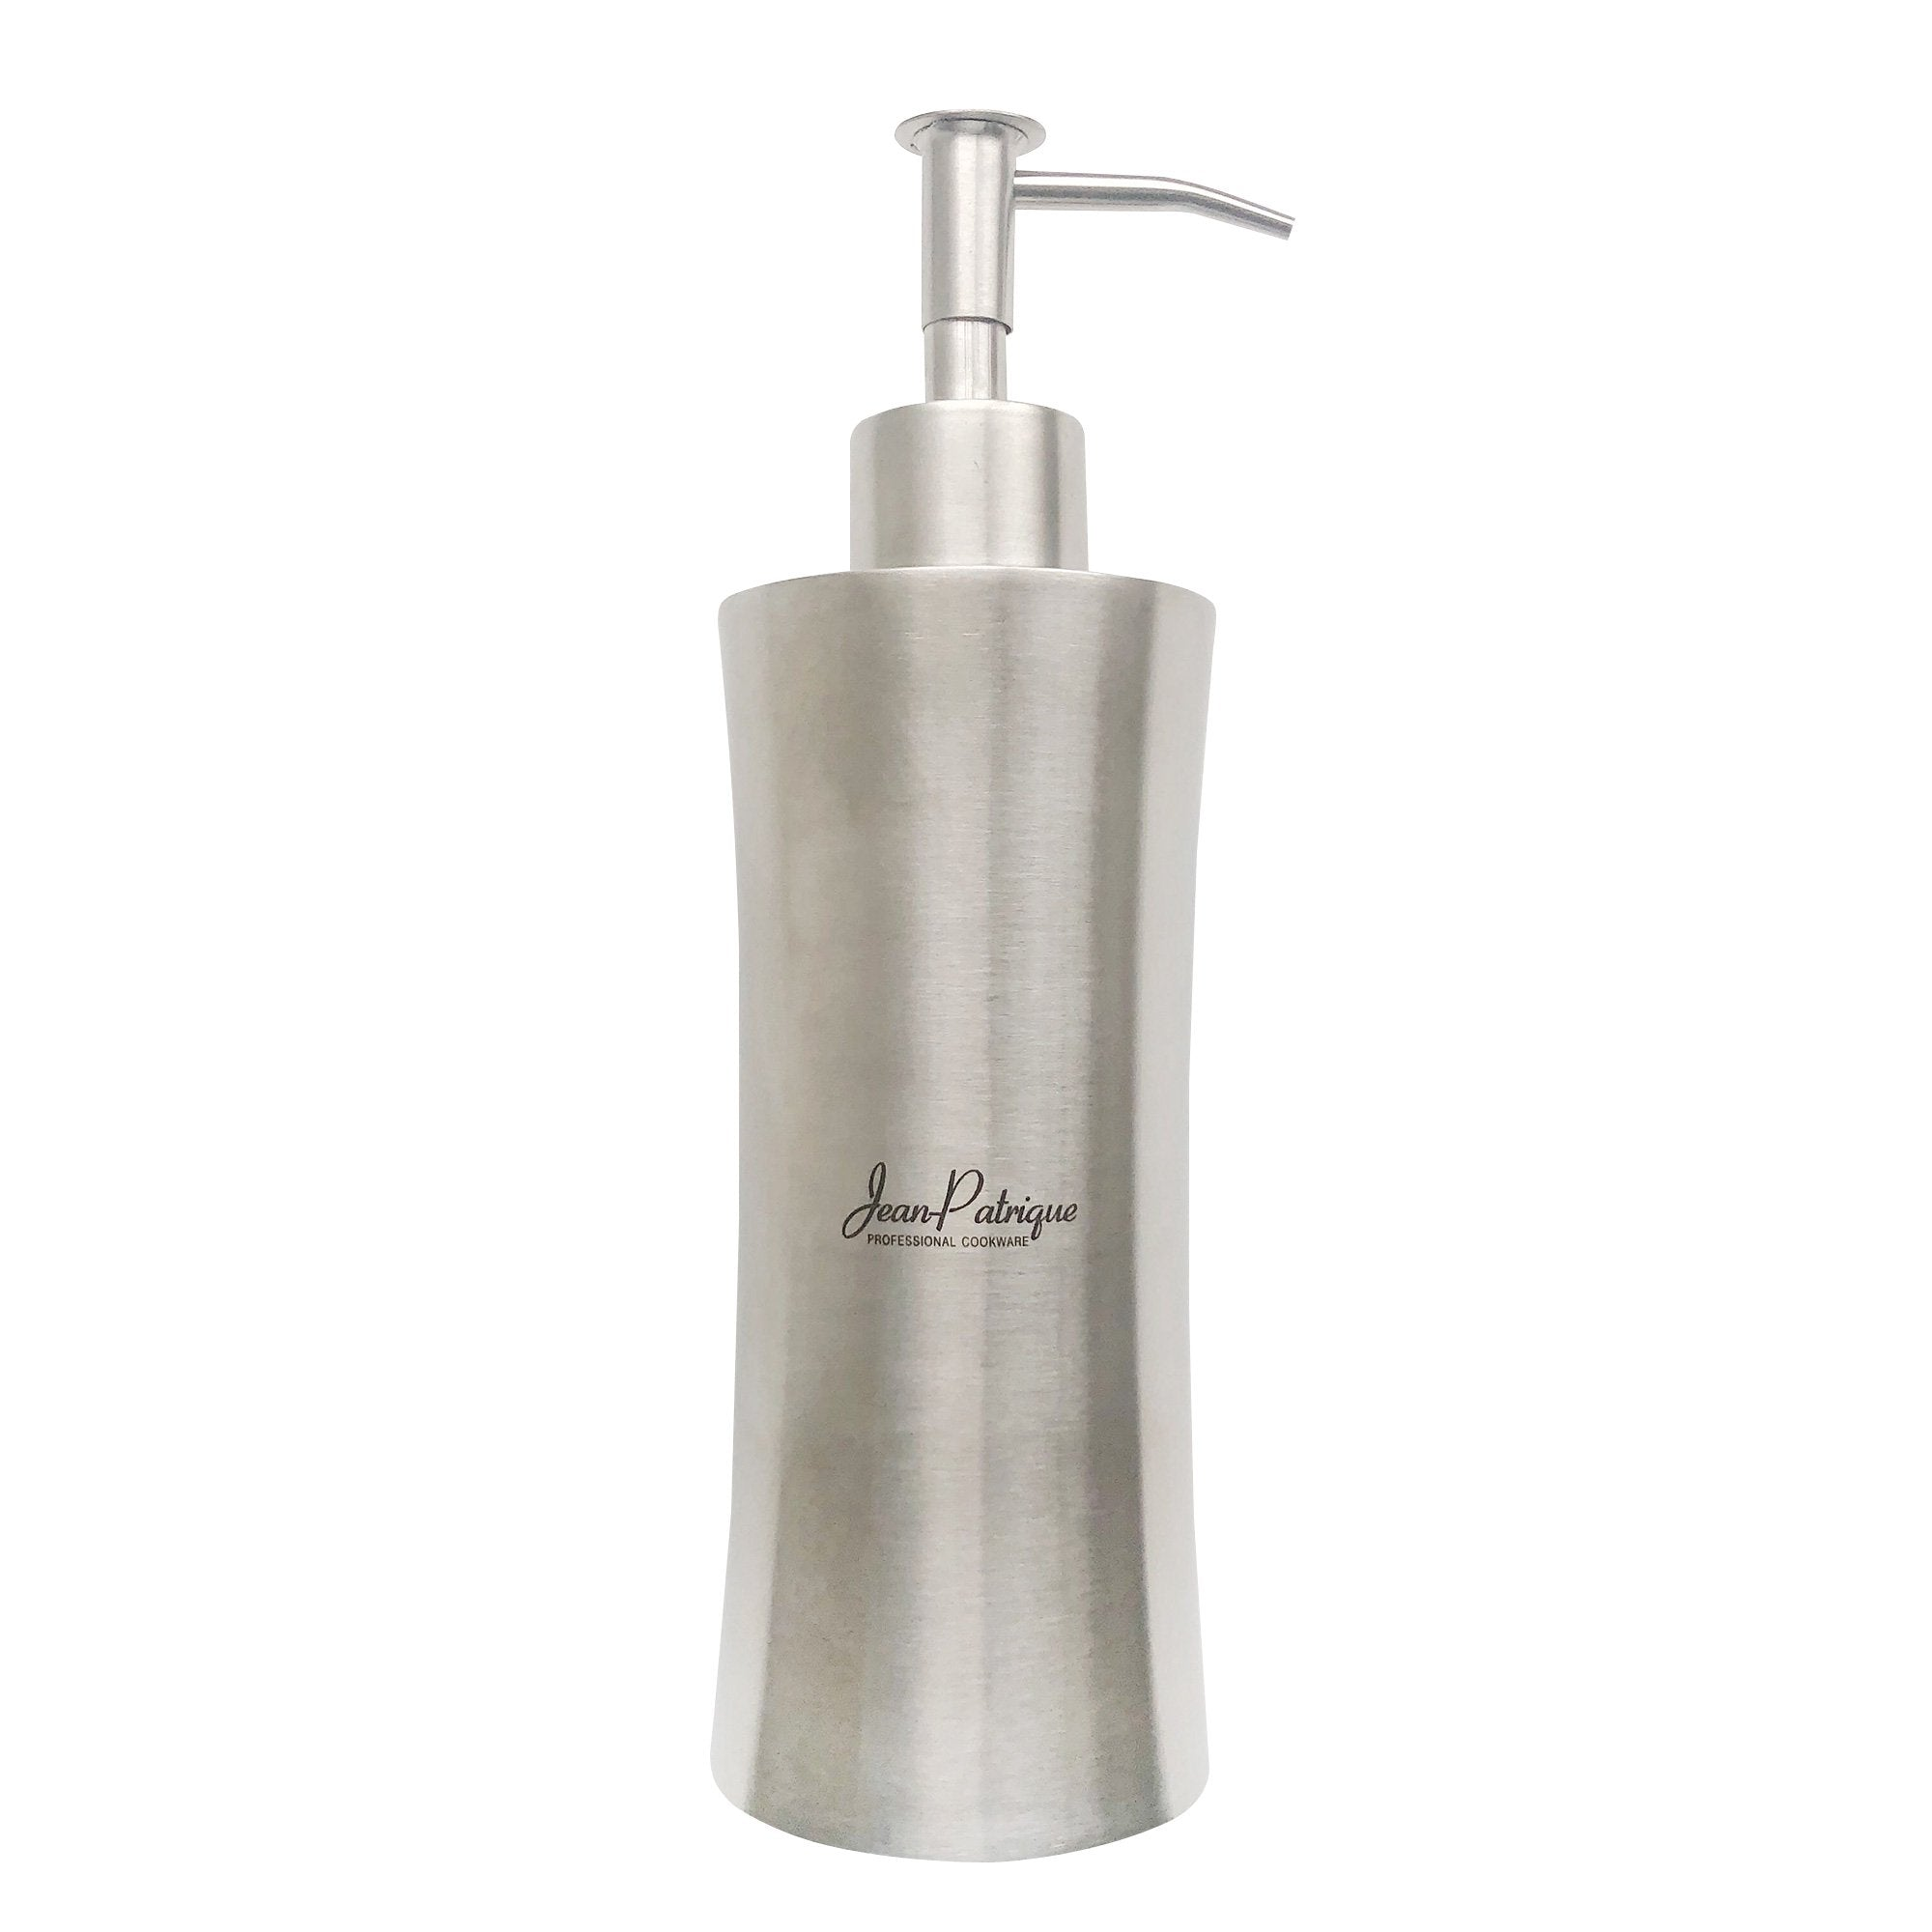 Stainless Steel Hand Soap Dispenser Pump